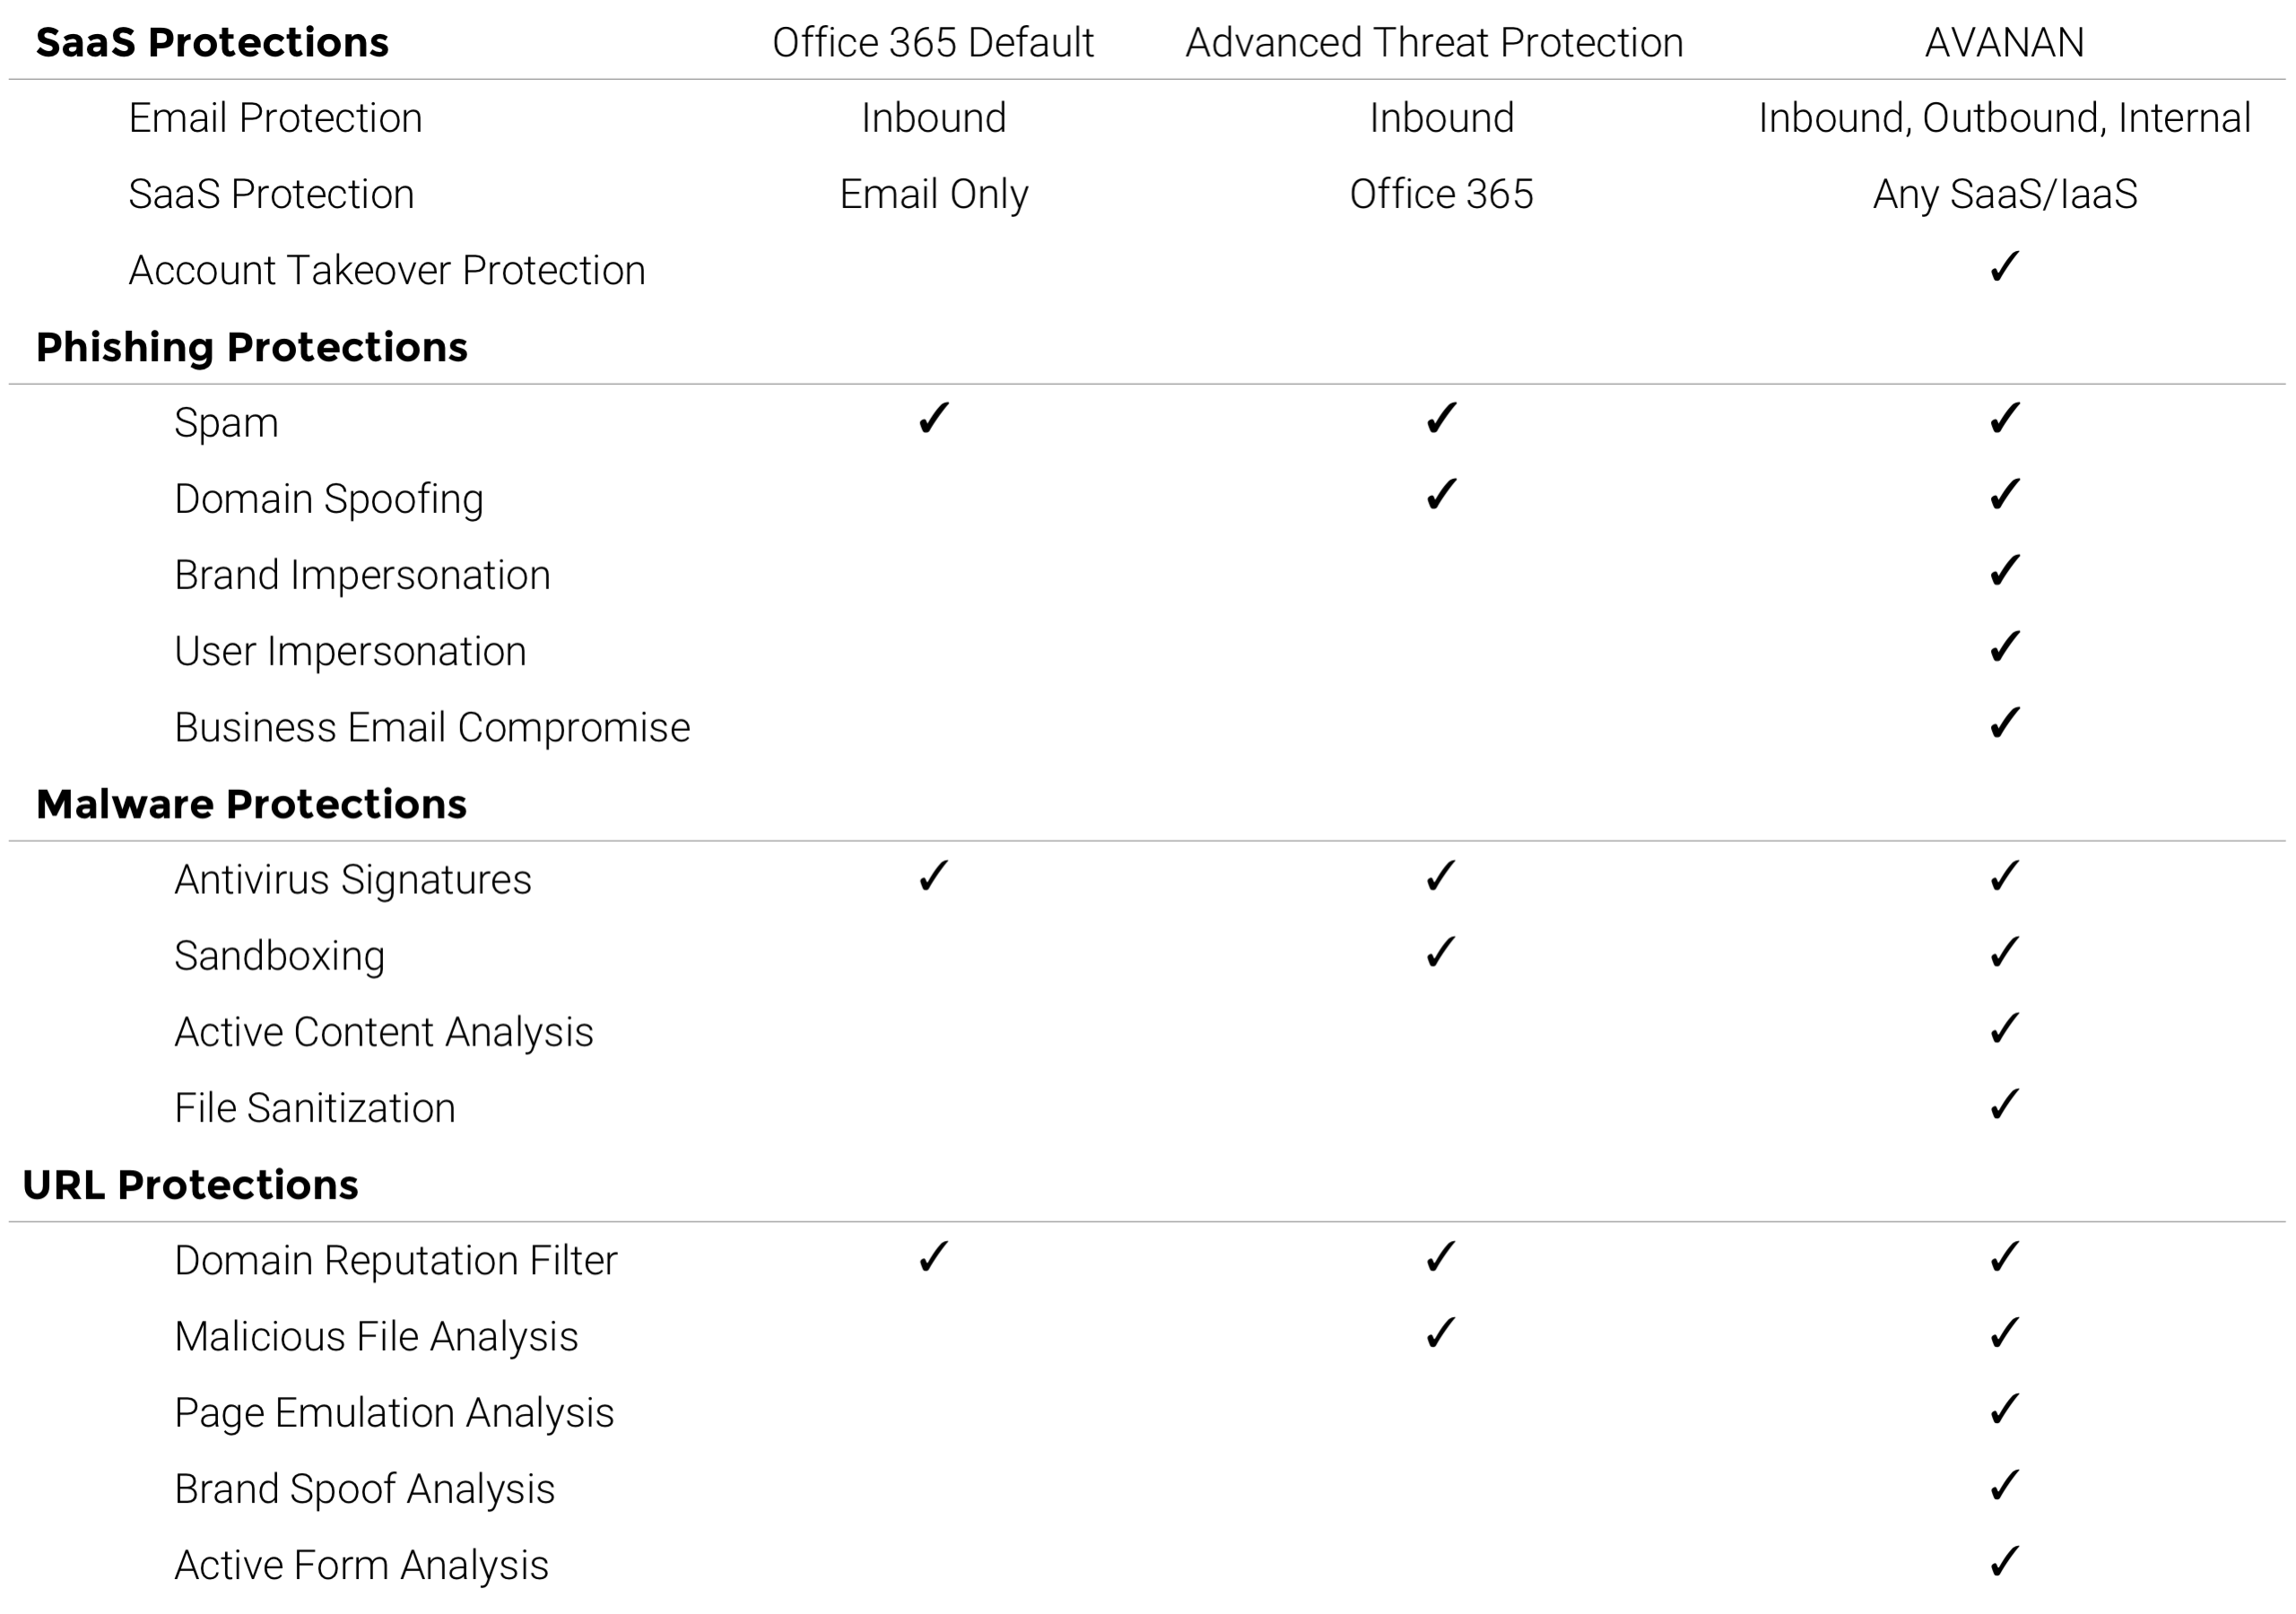 Avanan vs Advanced Threat Protection features